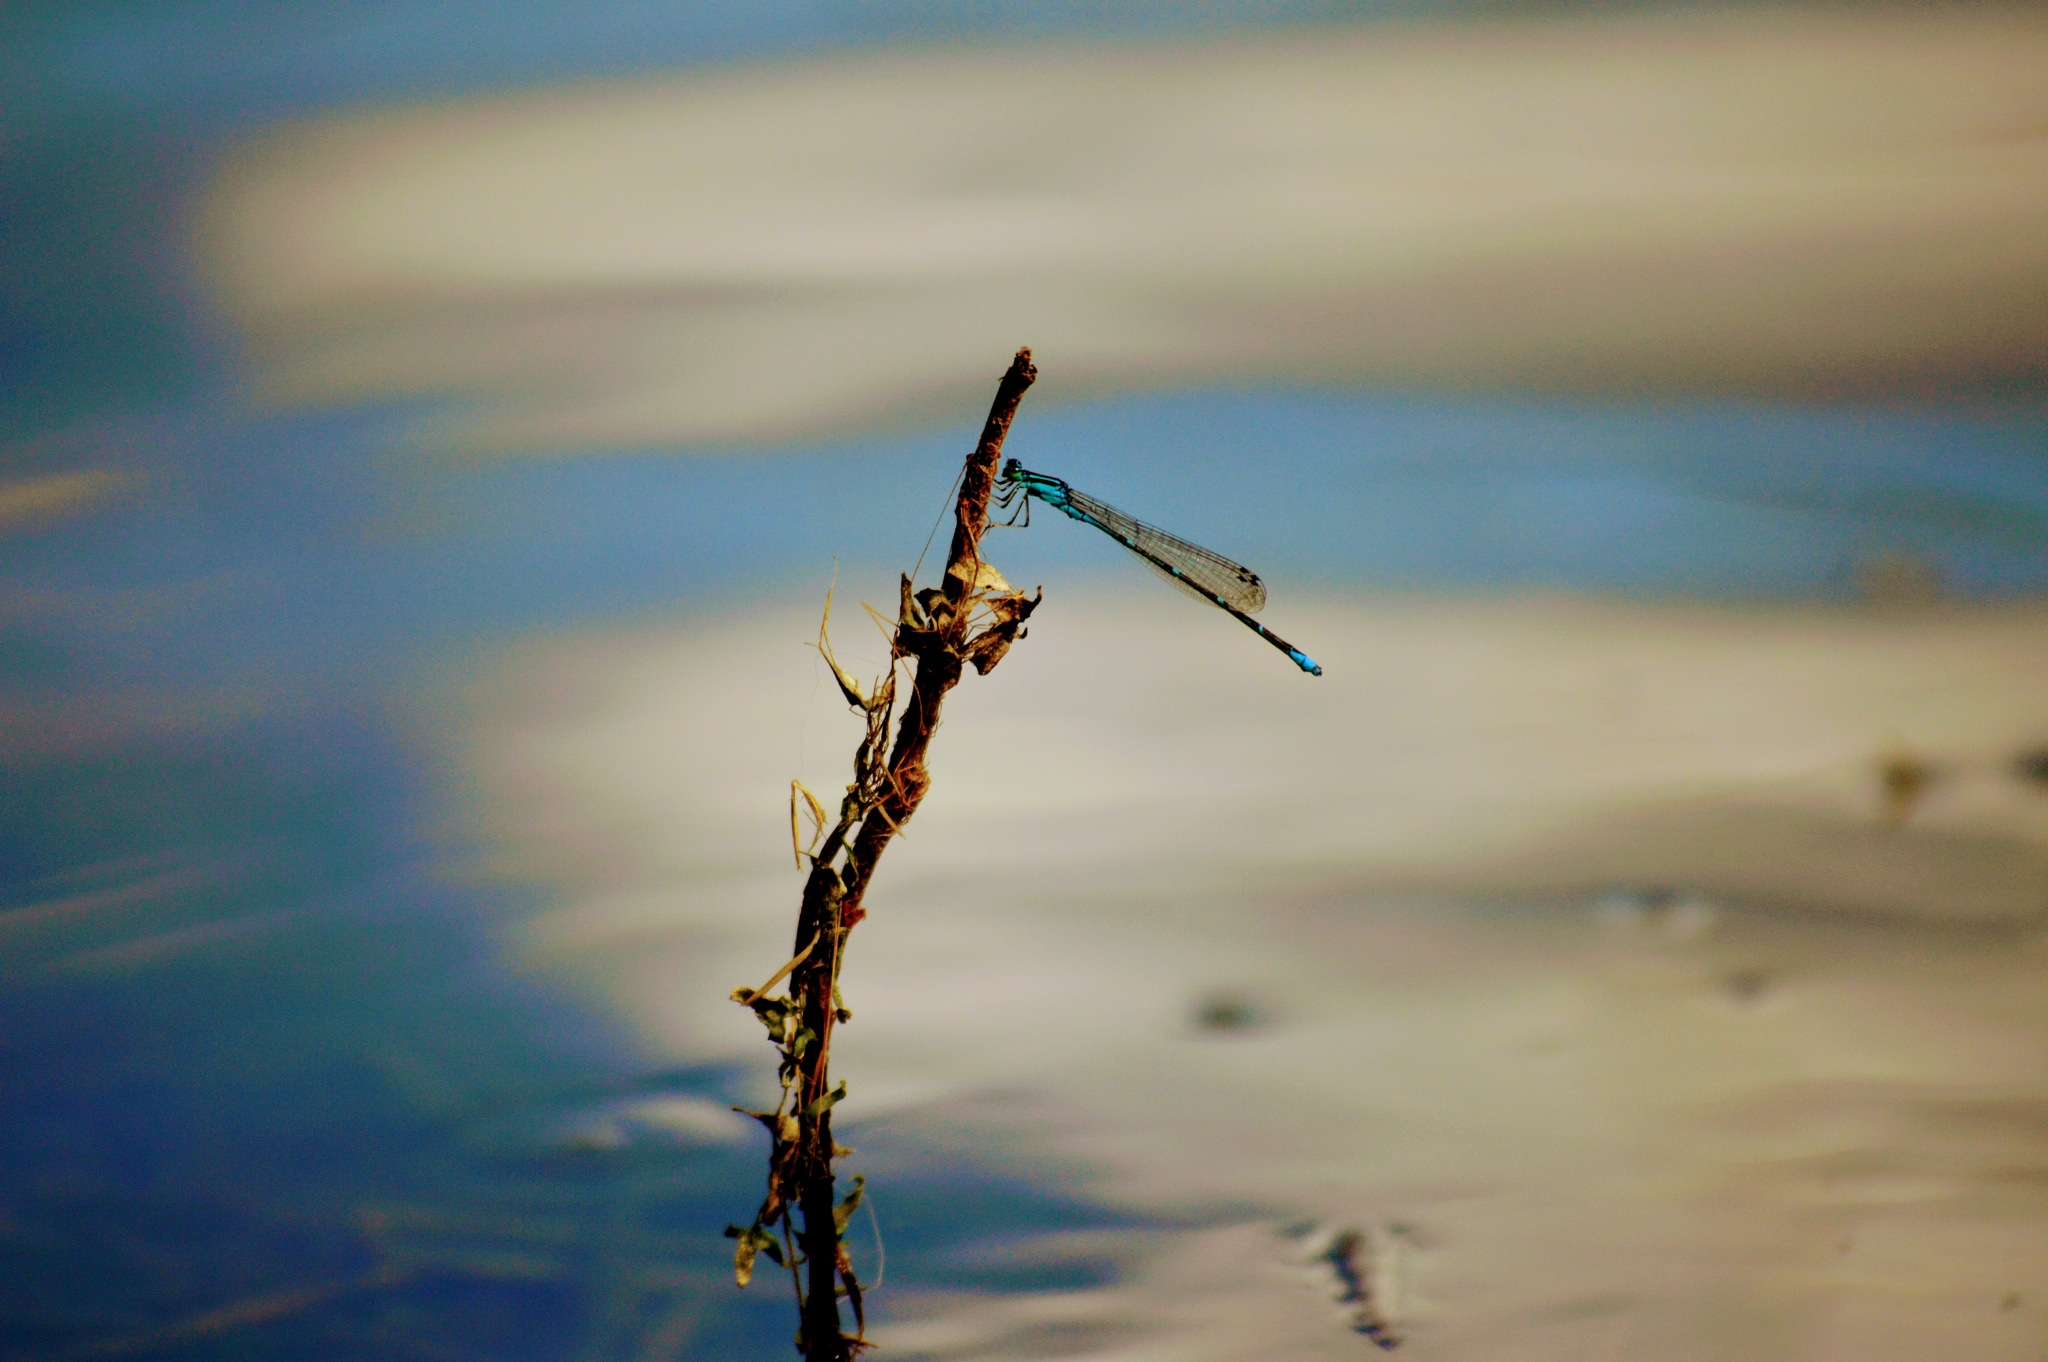 Blue Dragonfly by drcarlosesparza